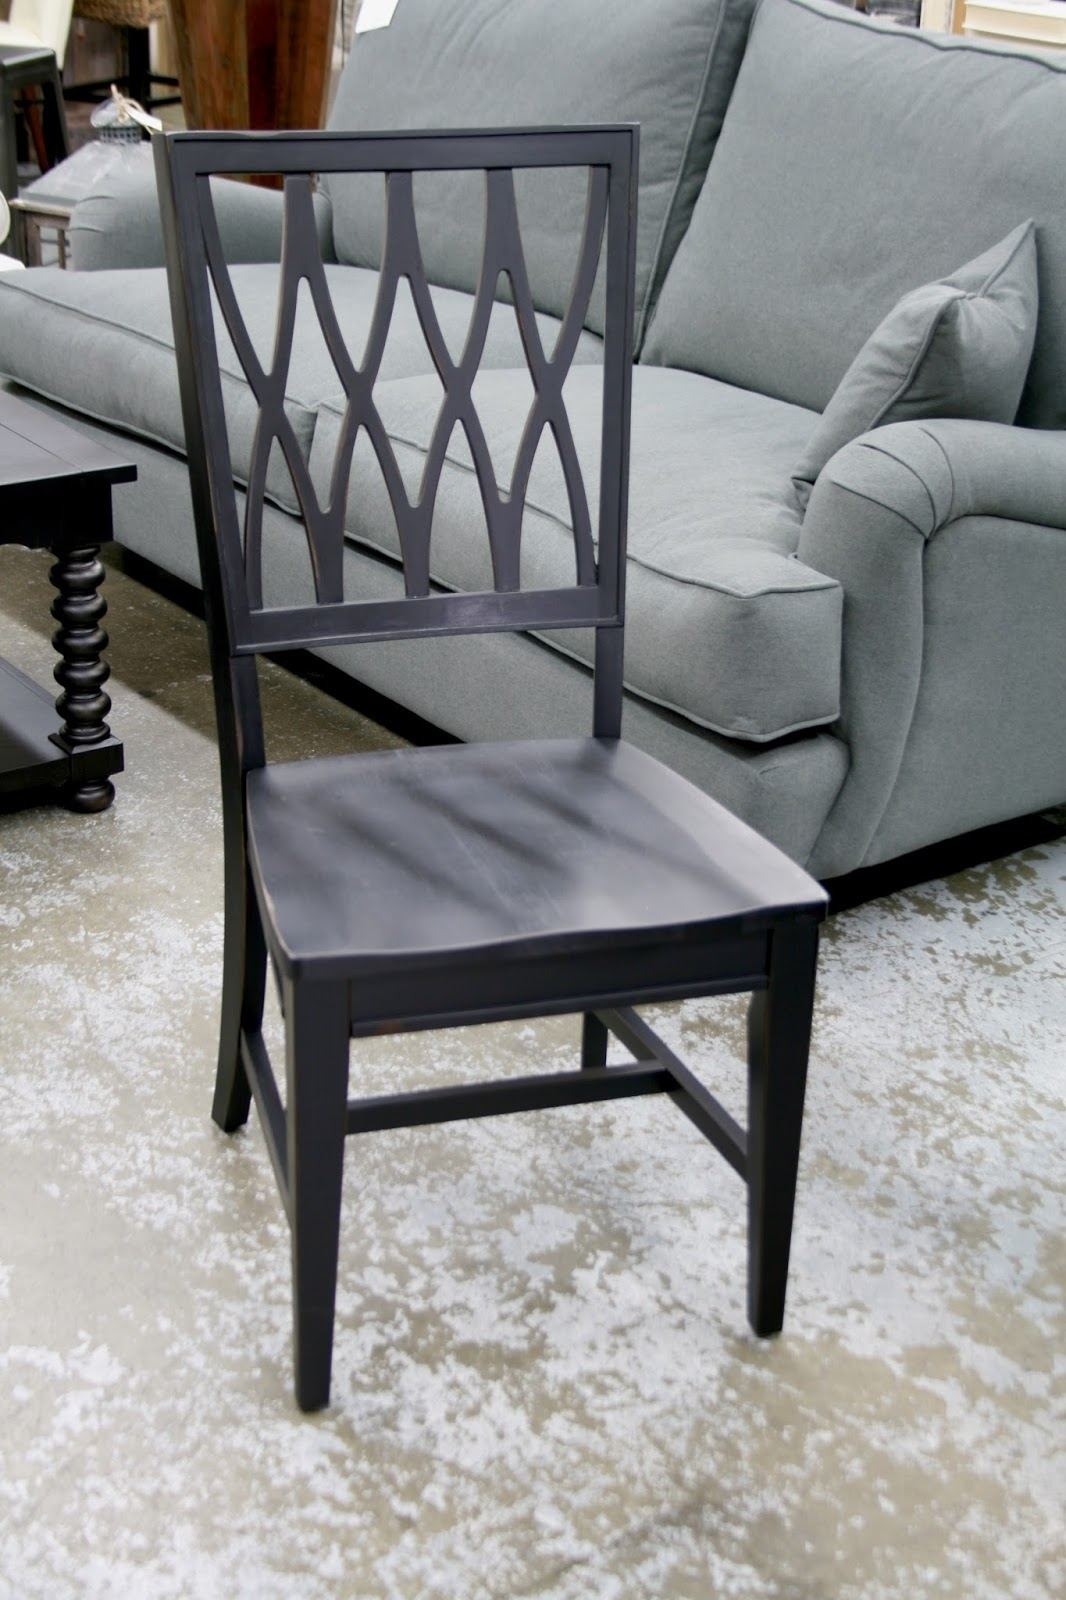 Chartreuse Home Furnishings: Dining In Style! With Best And Newest Magnolia Home Camden Side Chairs (View 18 of 20)